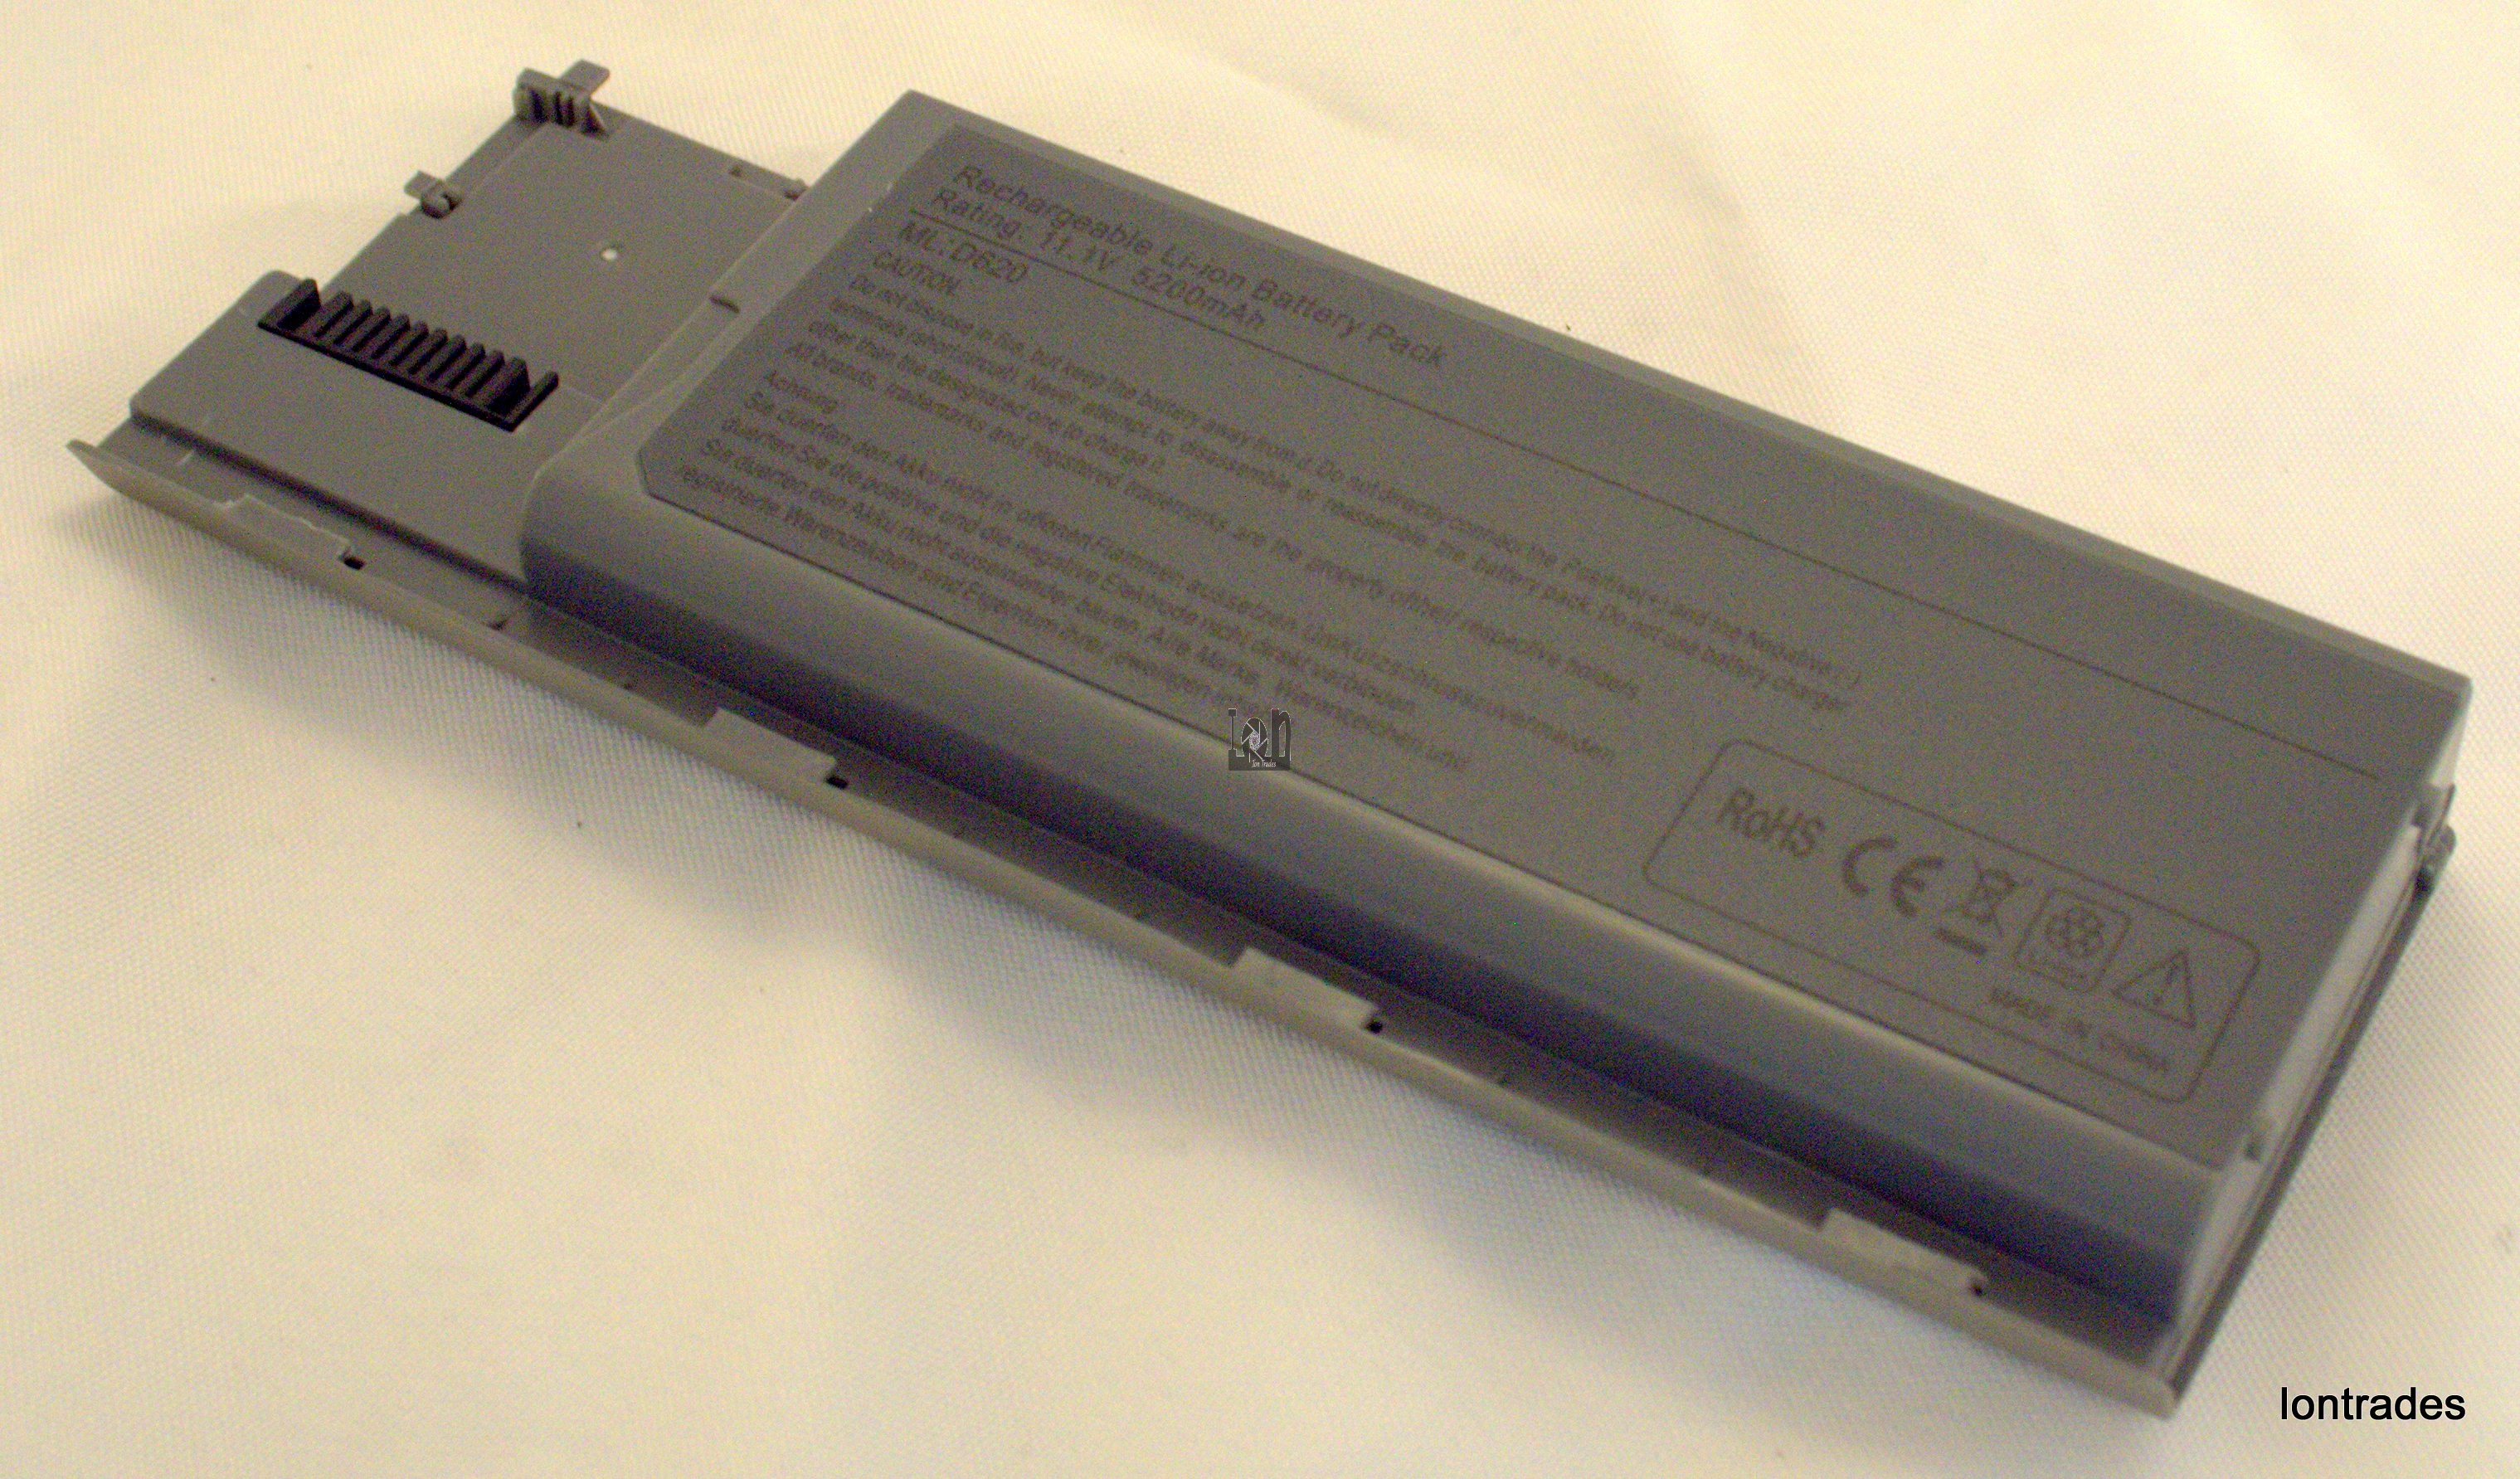 NEW Replacement Dell D620 Laptop Battery 5200mAh 11.1V Li-ion